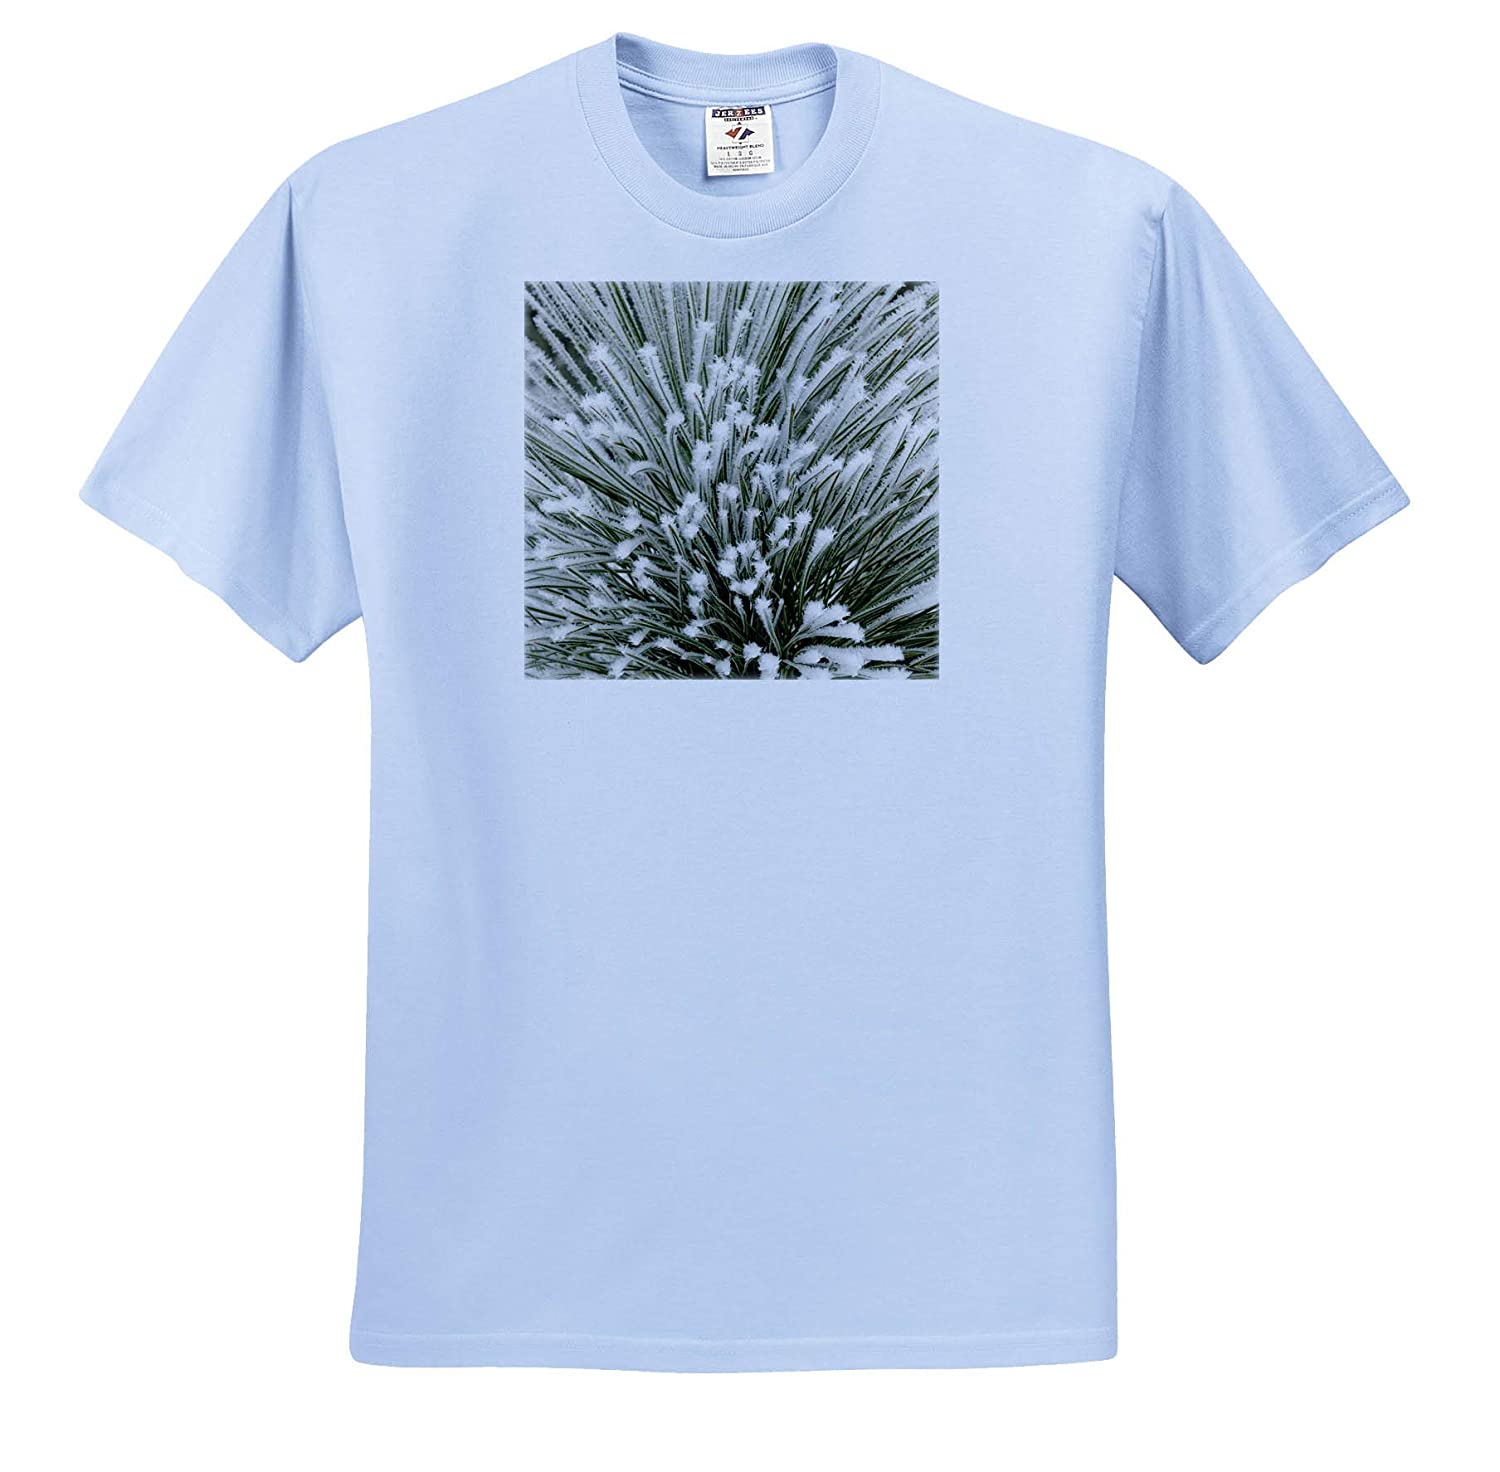 Adult T-Shirt XL ts/_314907 Winter Pine Bough with Heavy Frost Crystals 3dRose Danita Delimont Kalispell Montana